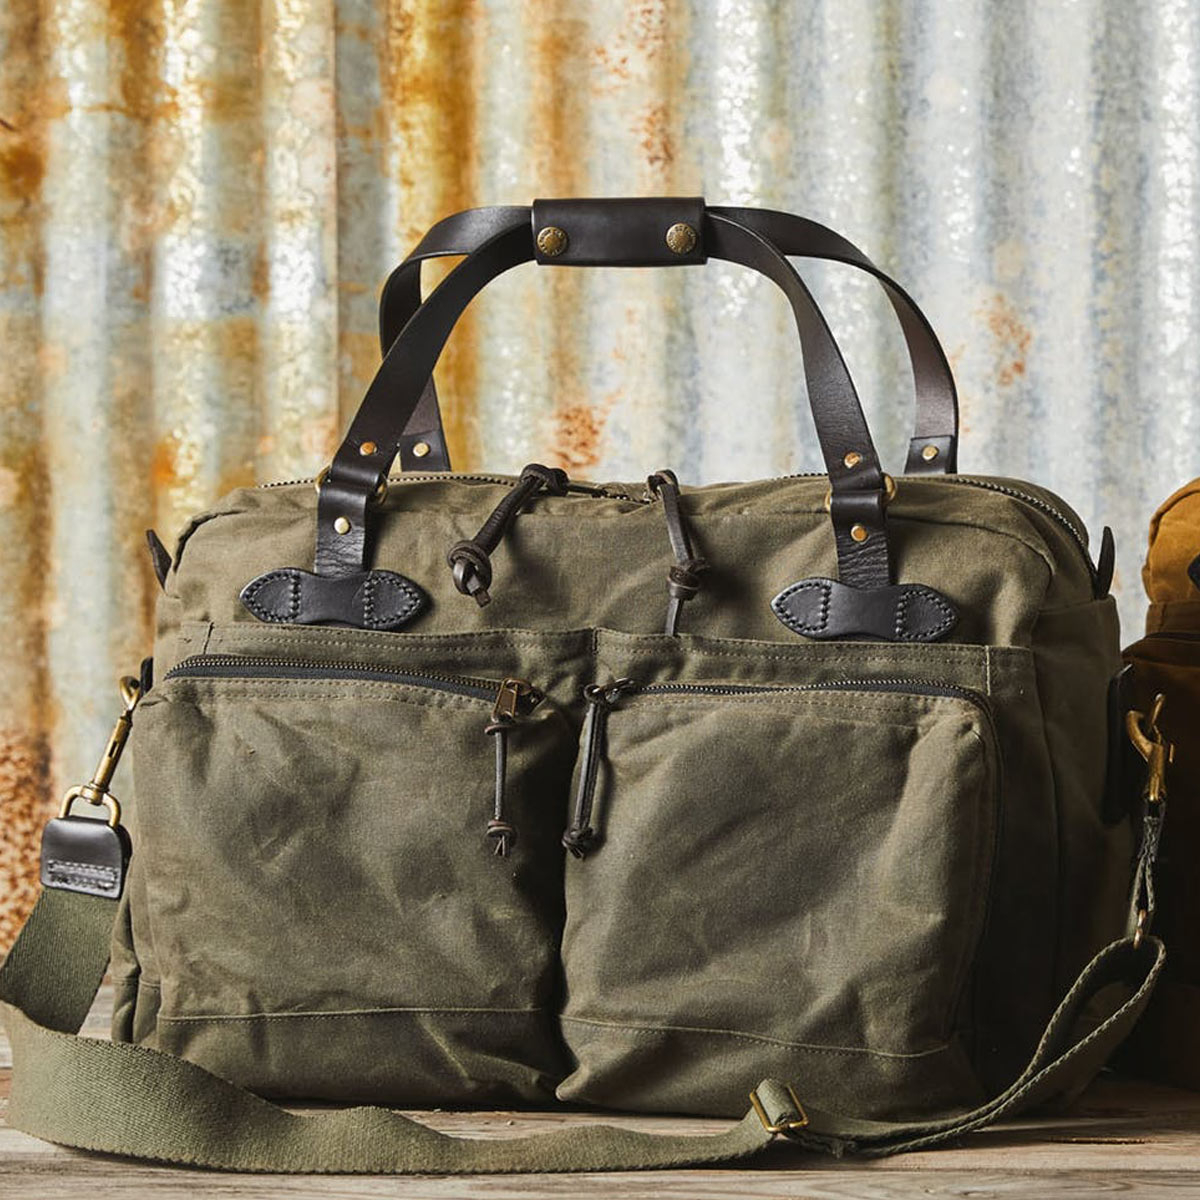 Filson 48-Hour Duffle 11070328 Otter Green, a well built and robust duffle with great pockets for a long weekend